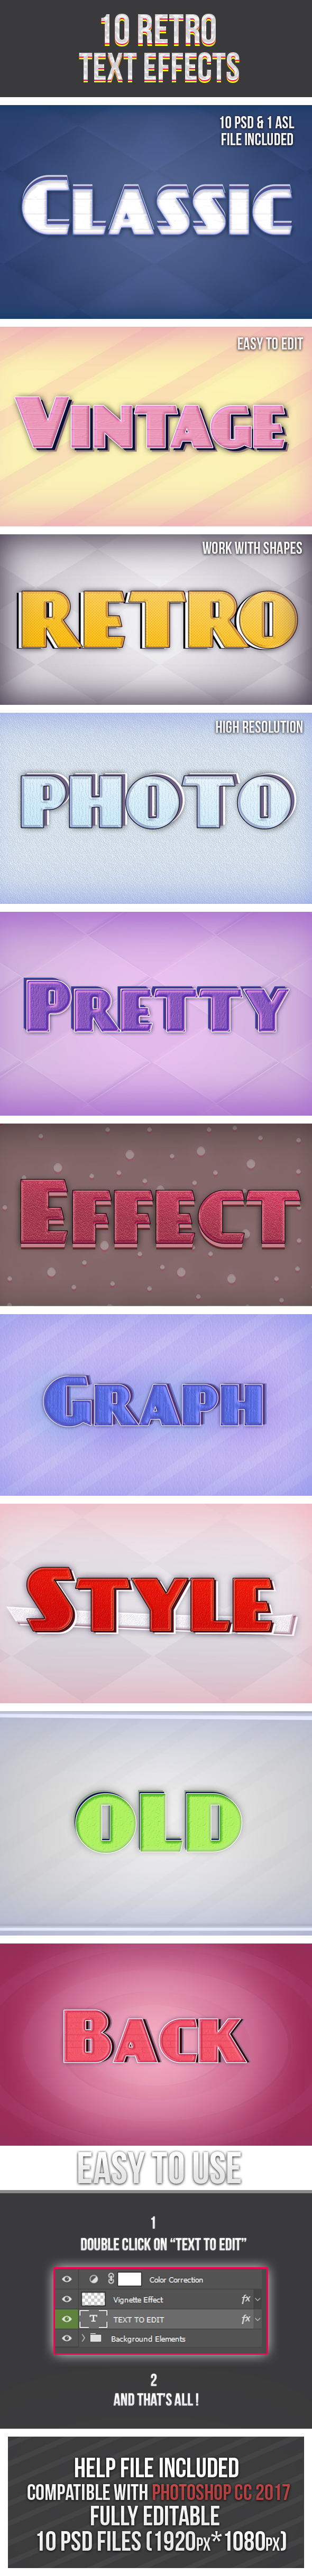 Retro Text Effects - Text Effects Styles